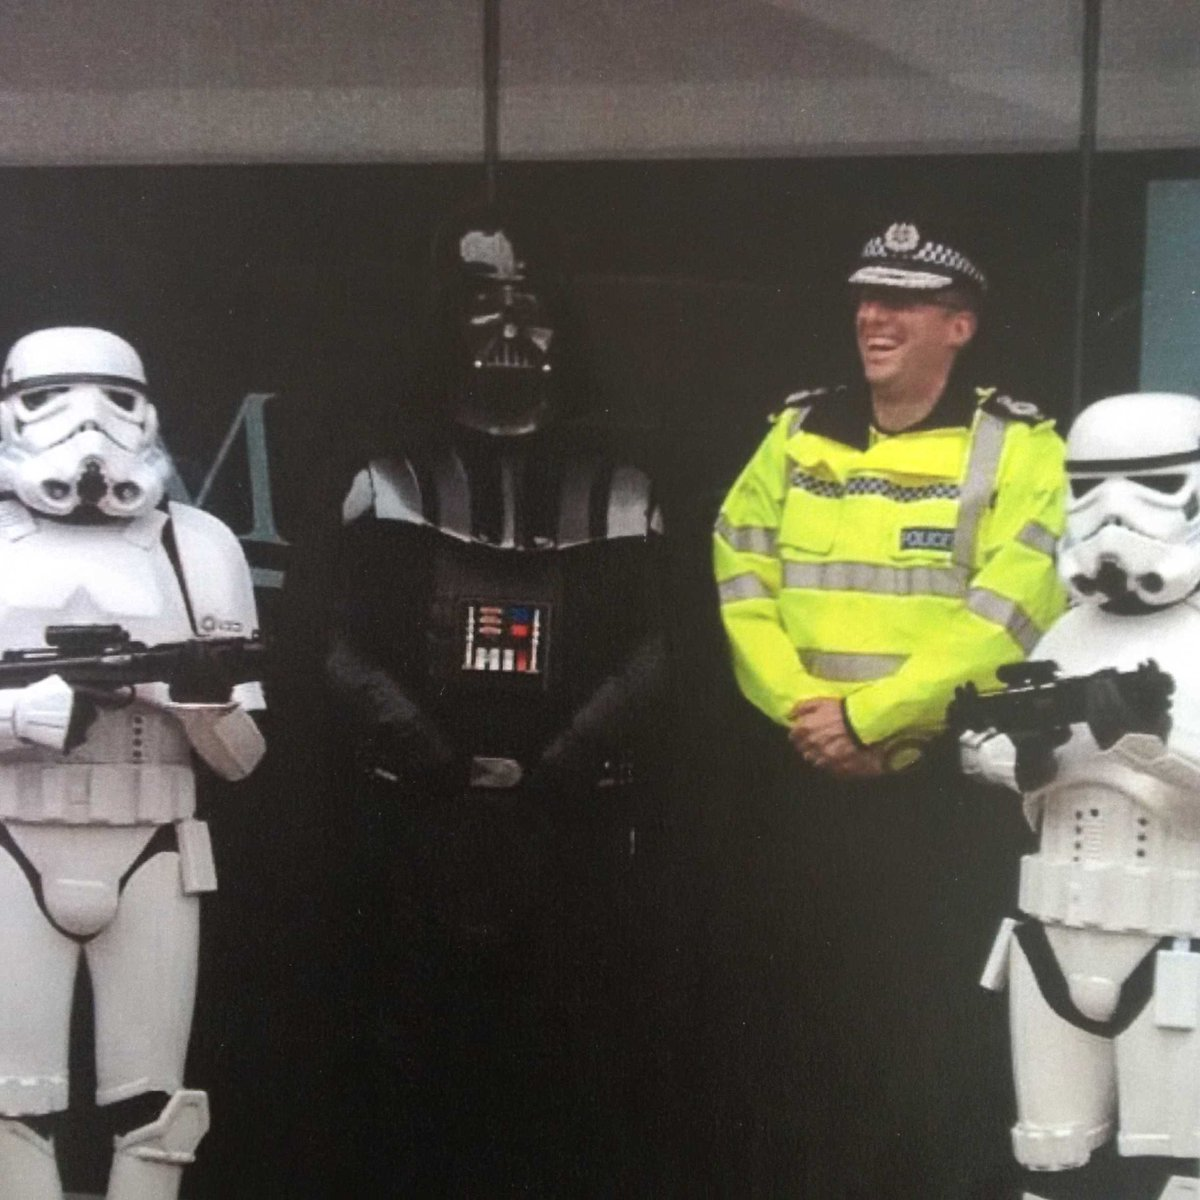 #TheForceAwakens   Patrol strategy review required @leicspolice   @UKCopHumour https://t.co/xMuUrKHj6h